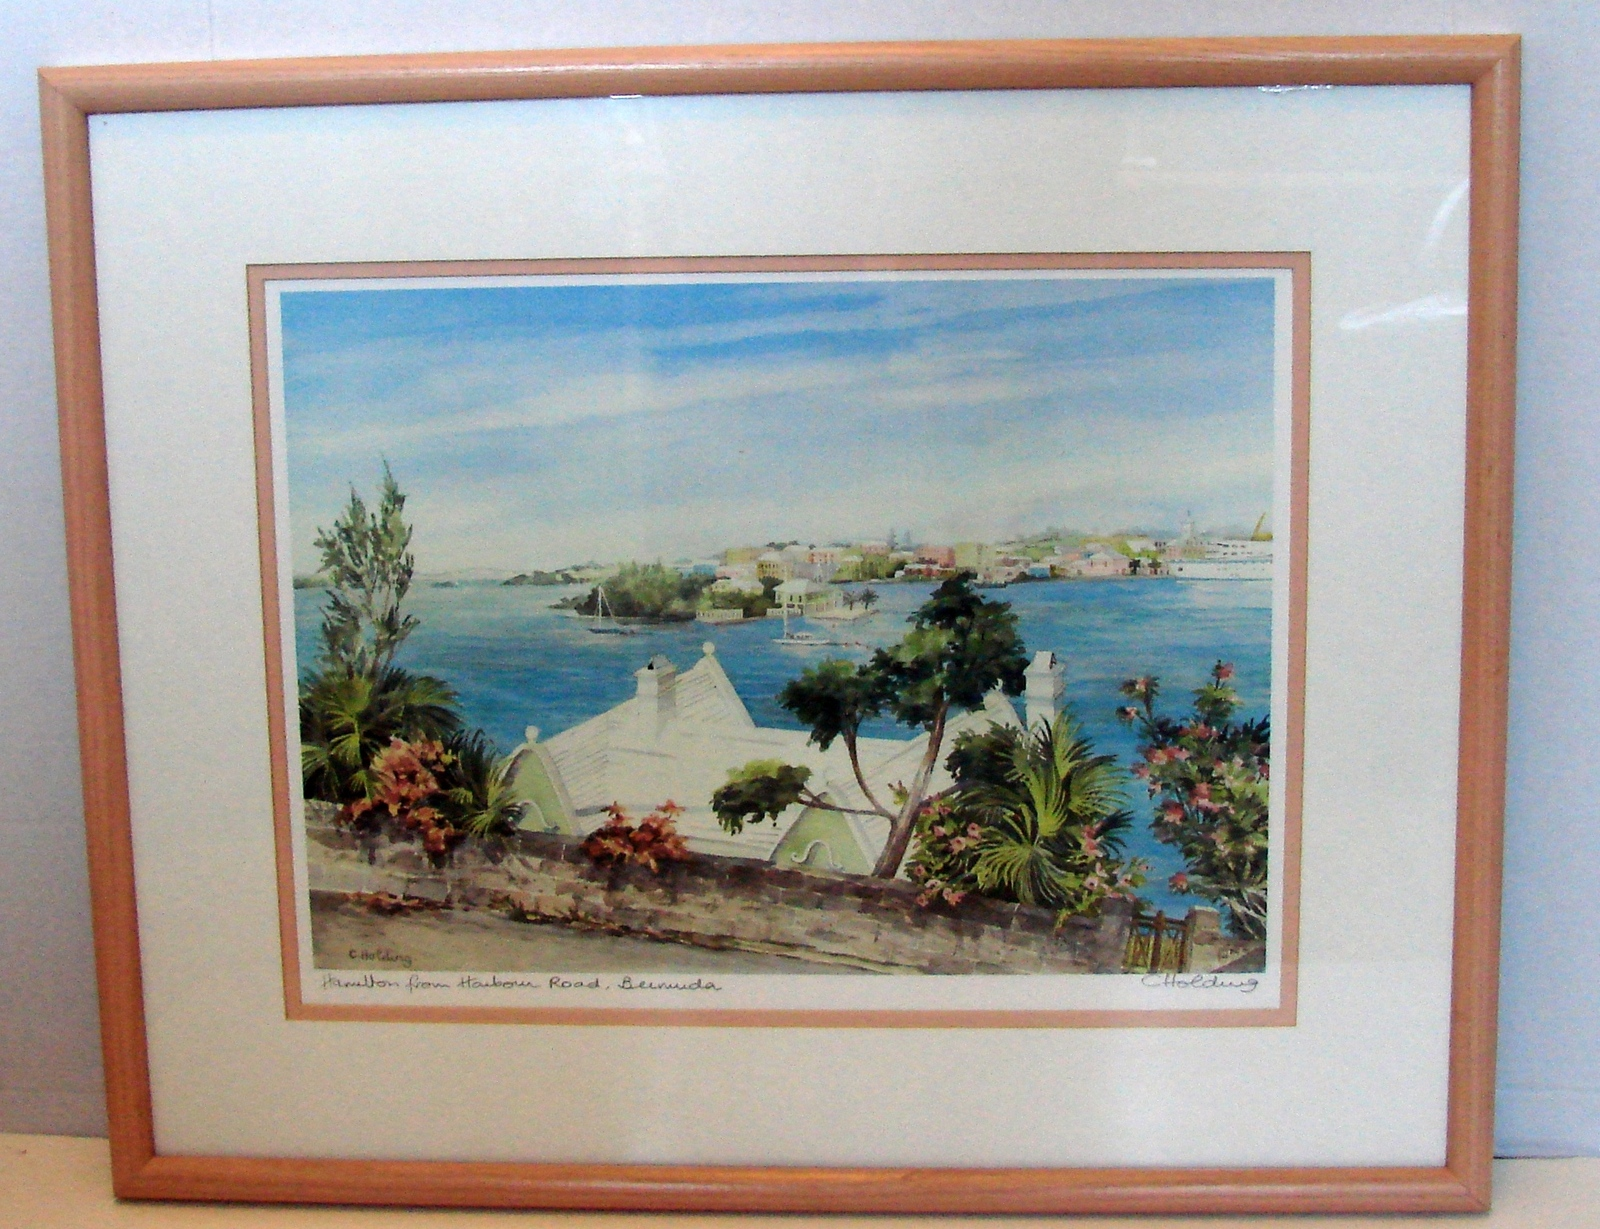 Hamilton from Harbour Road Bermuda  Pastel Painting- by C.Holding Signed, Frame